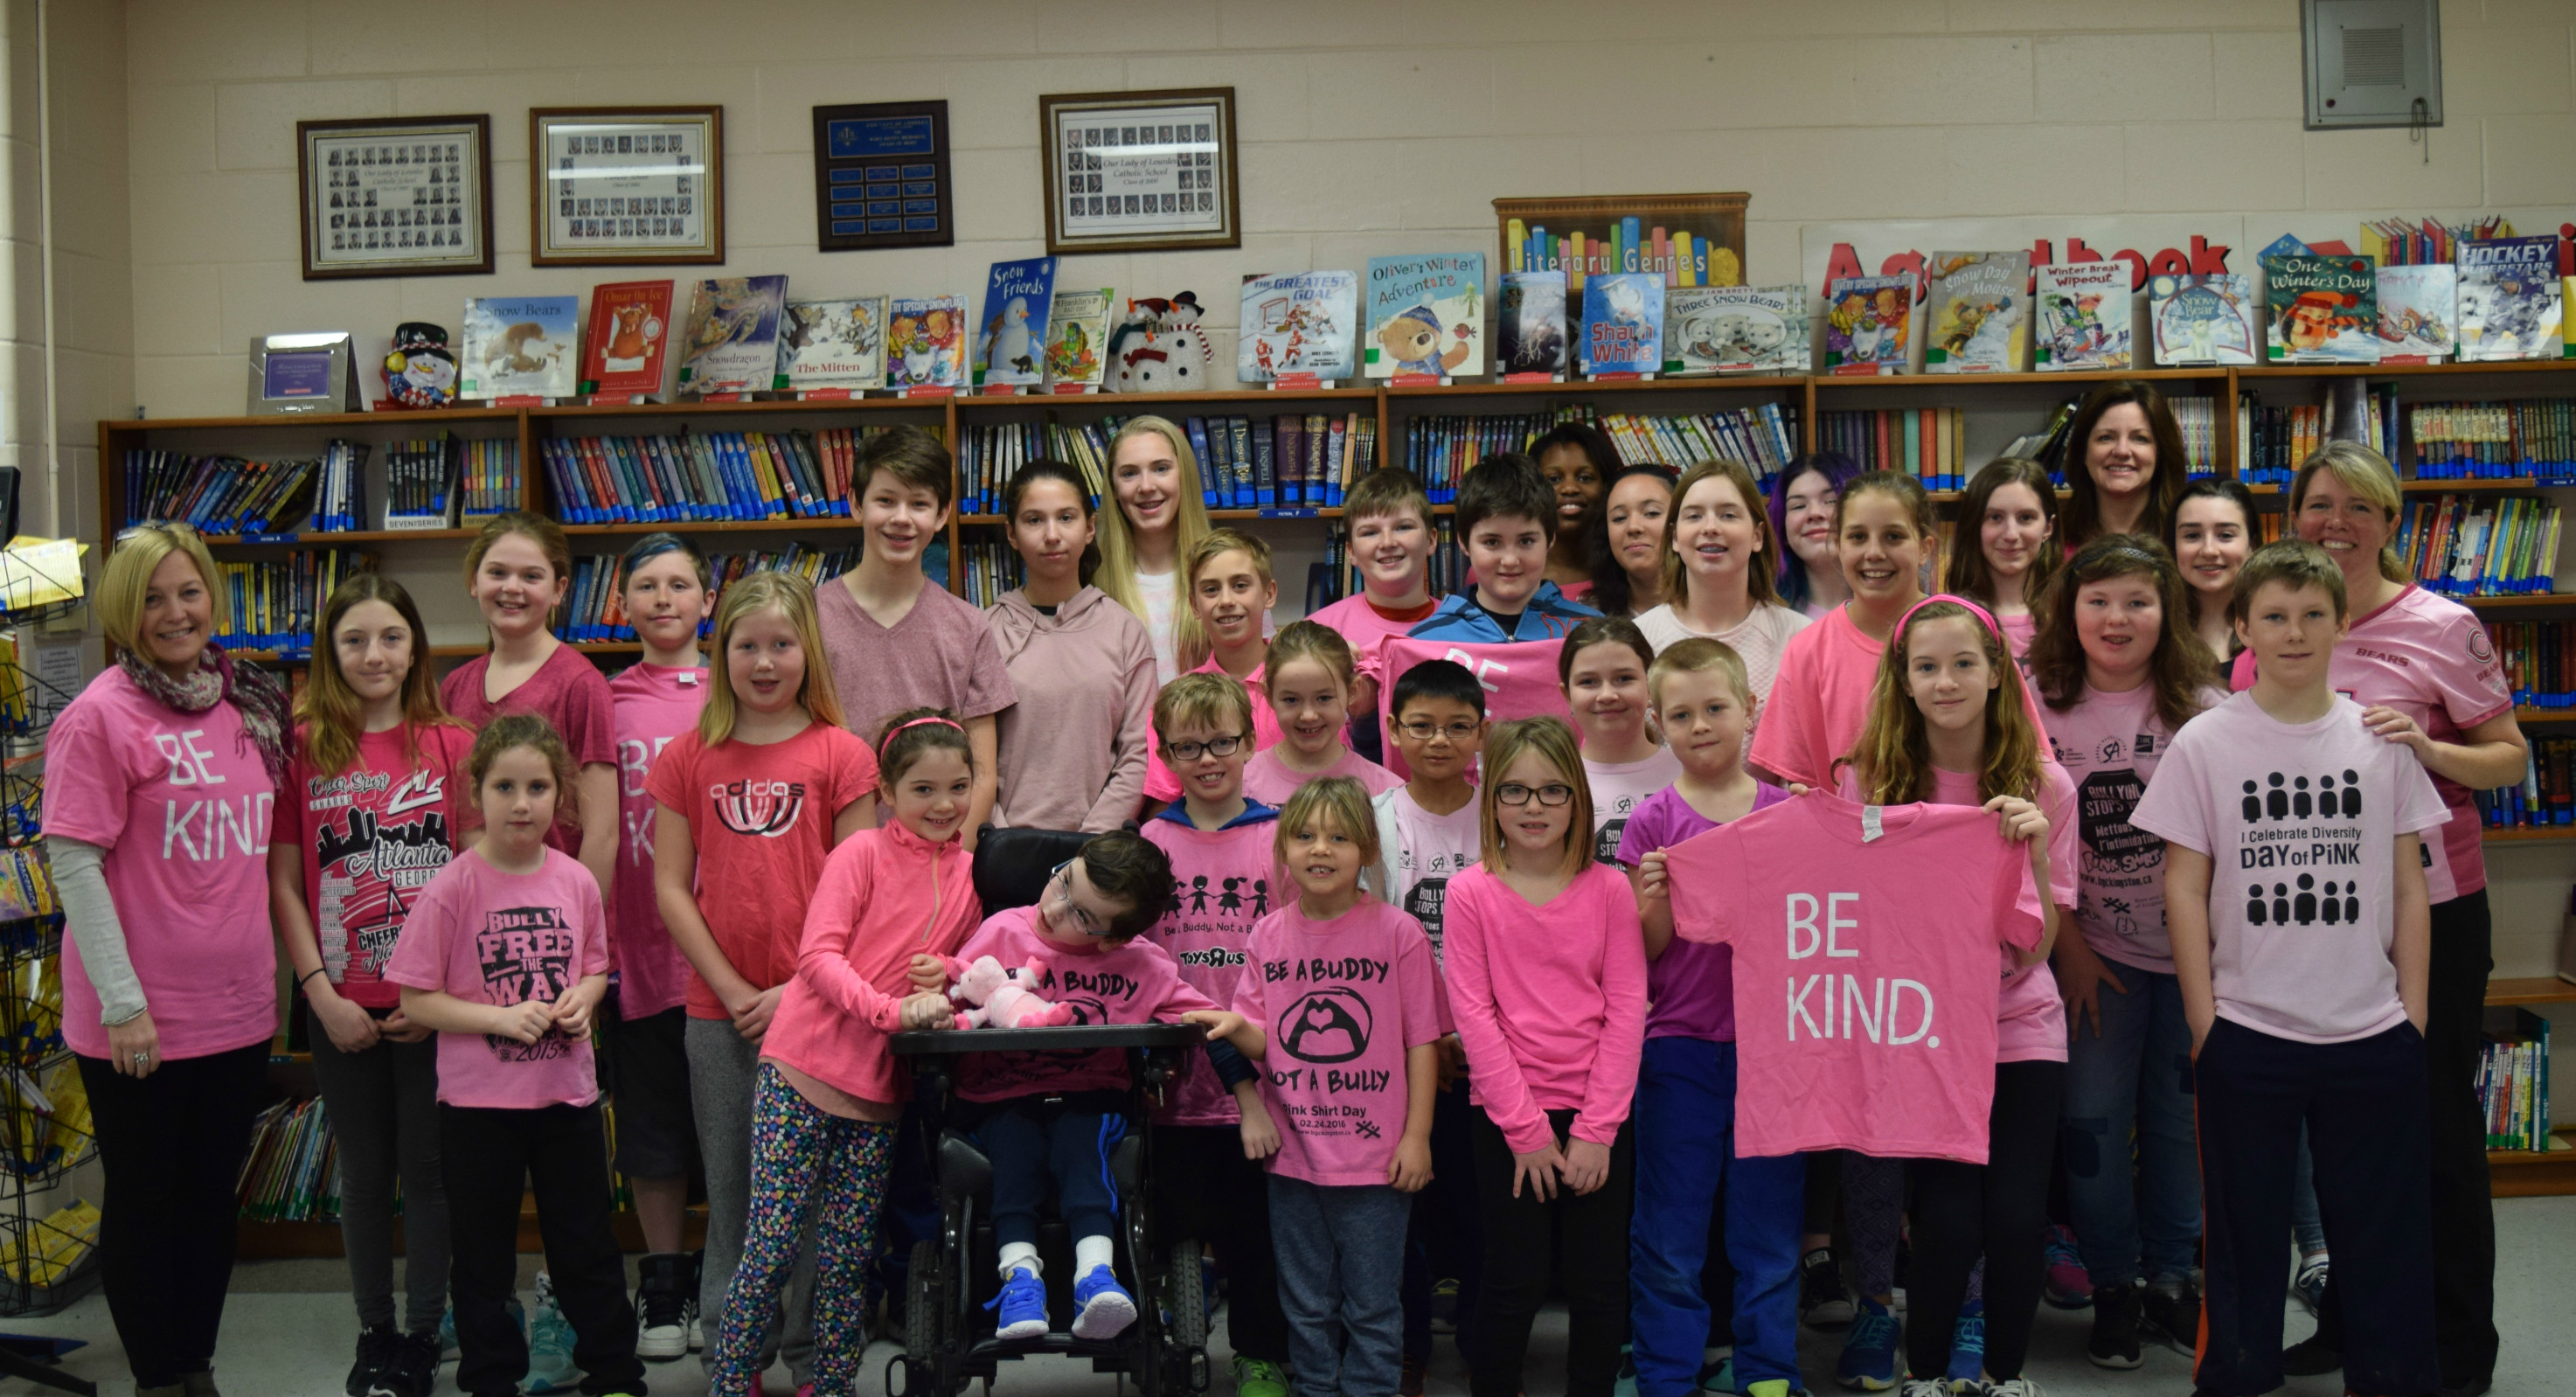 Students participating in pink shirt day 2017